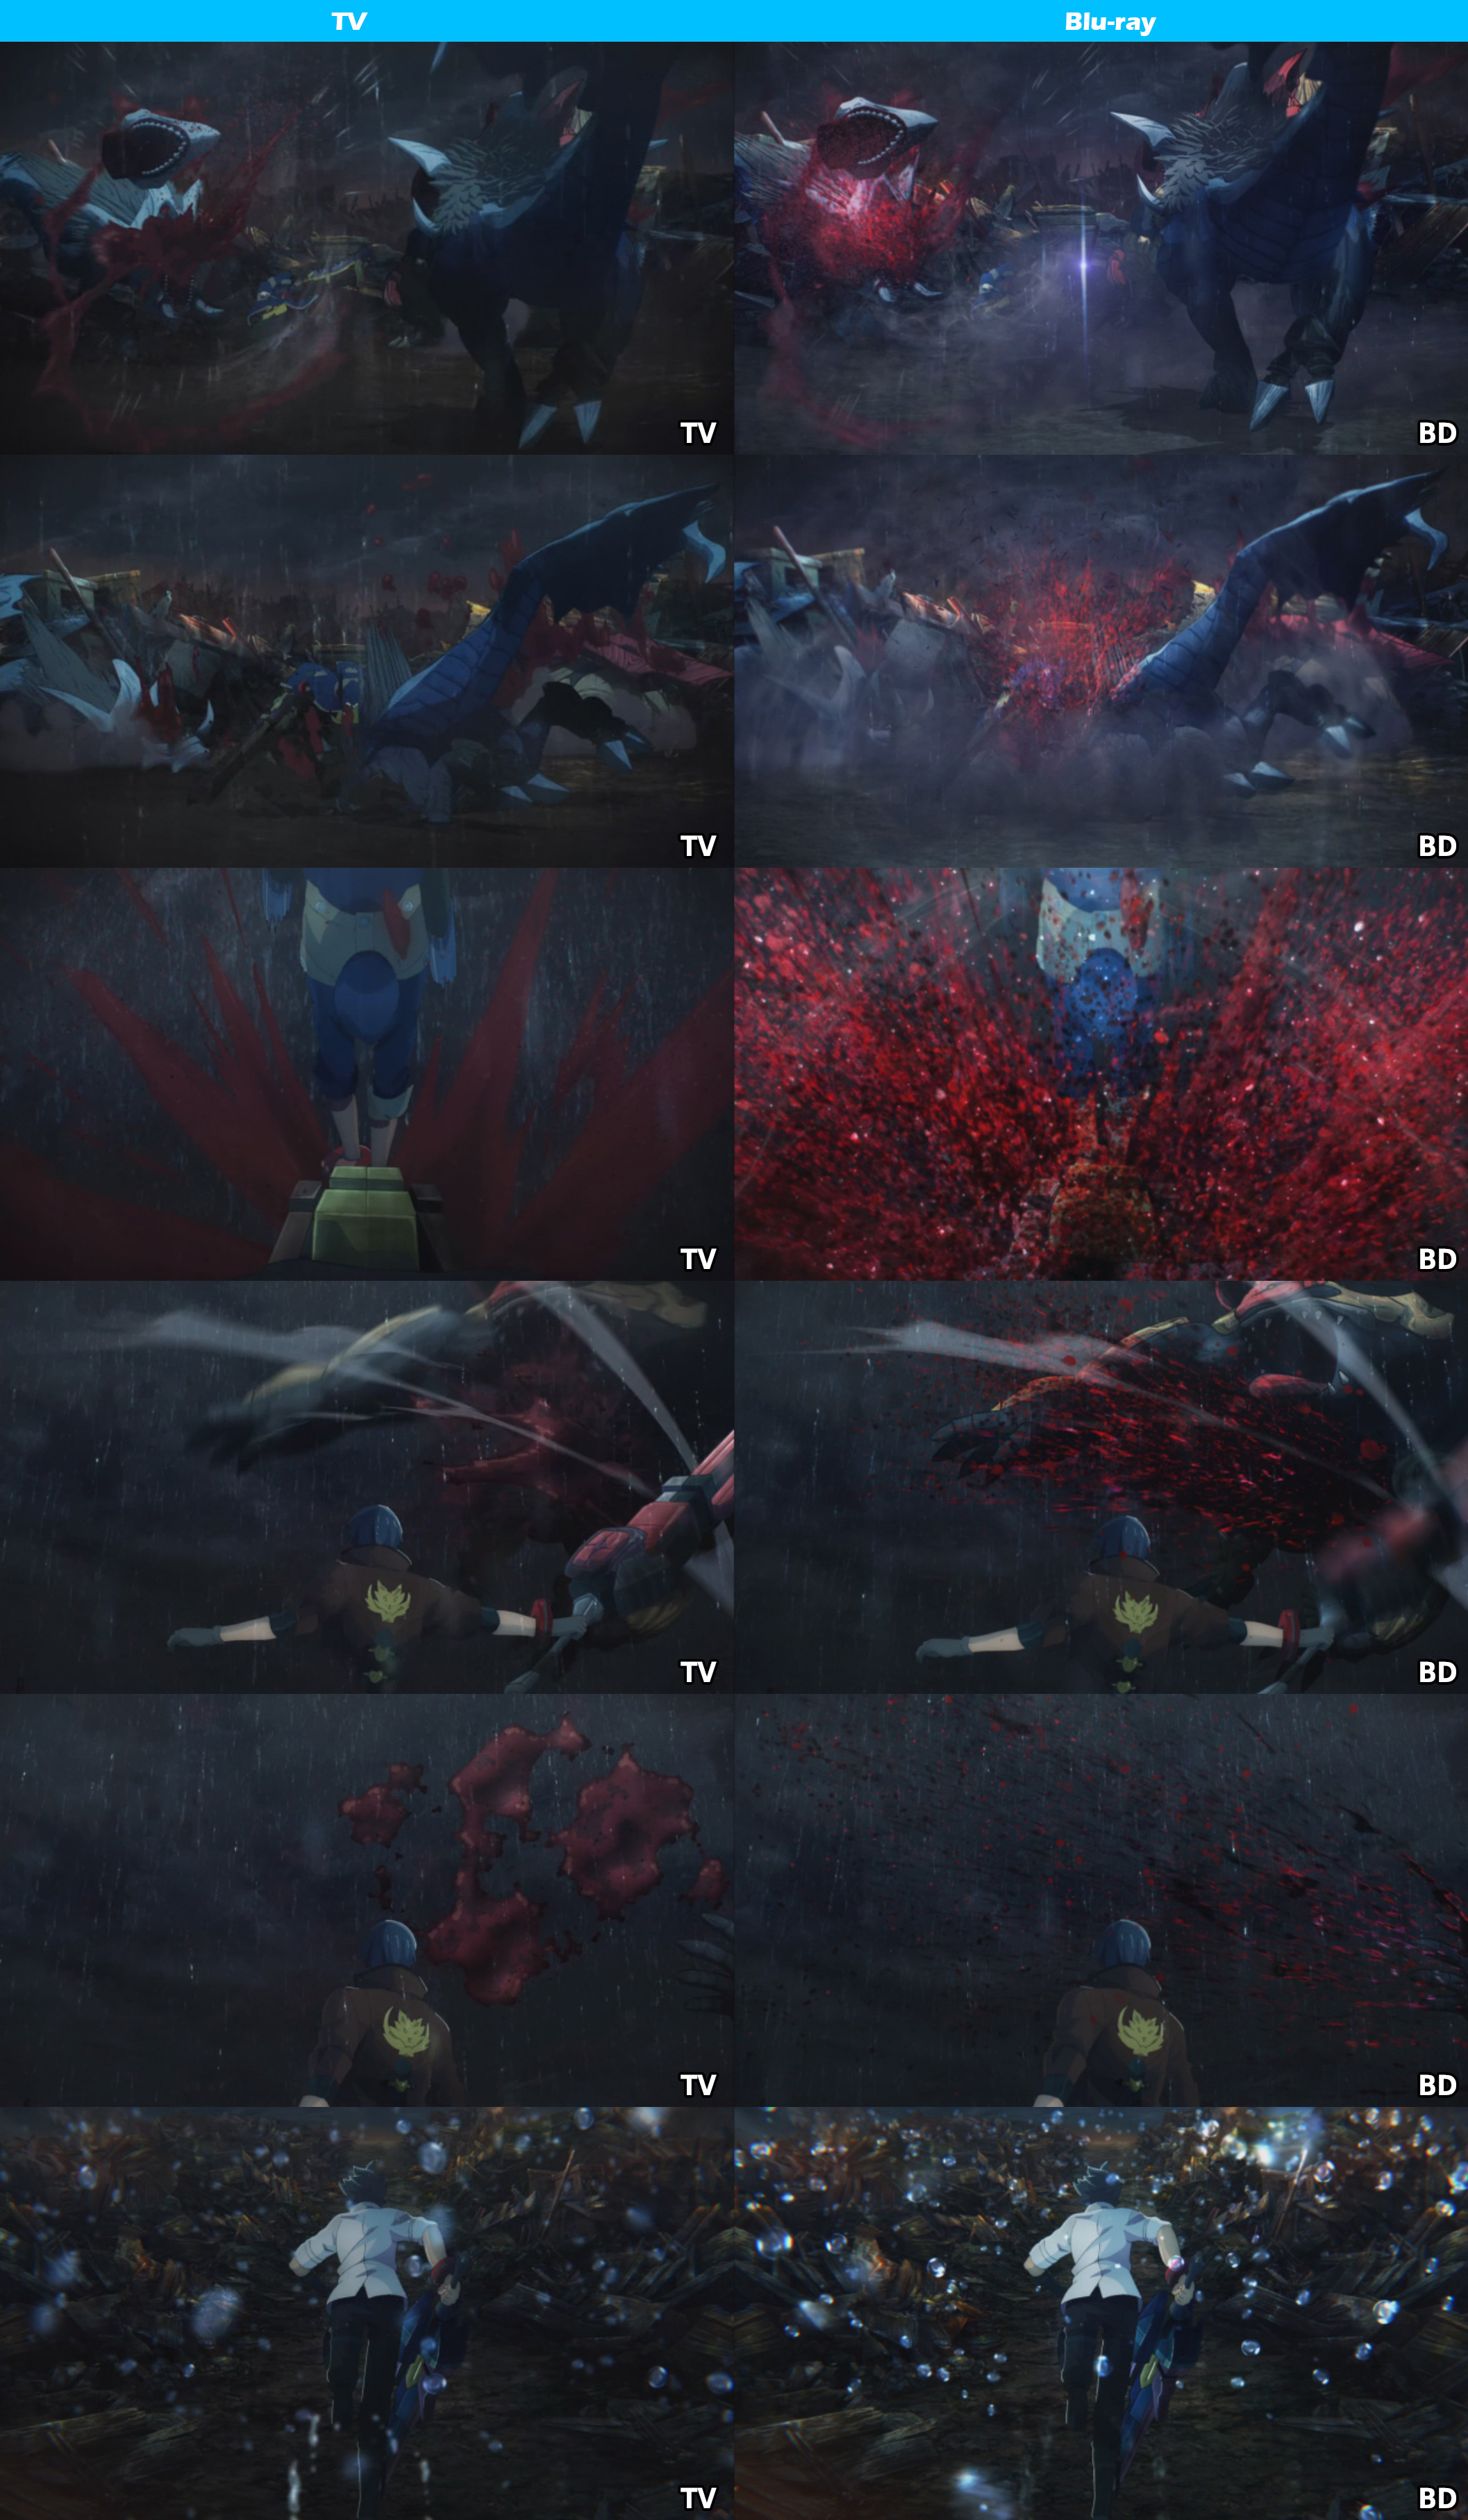 God-Eater-Anime-TV-and-Blu-ray-Comparison-9